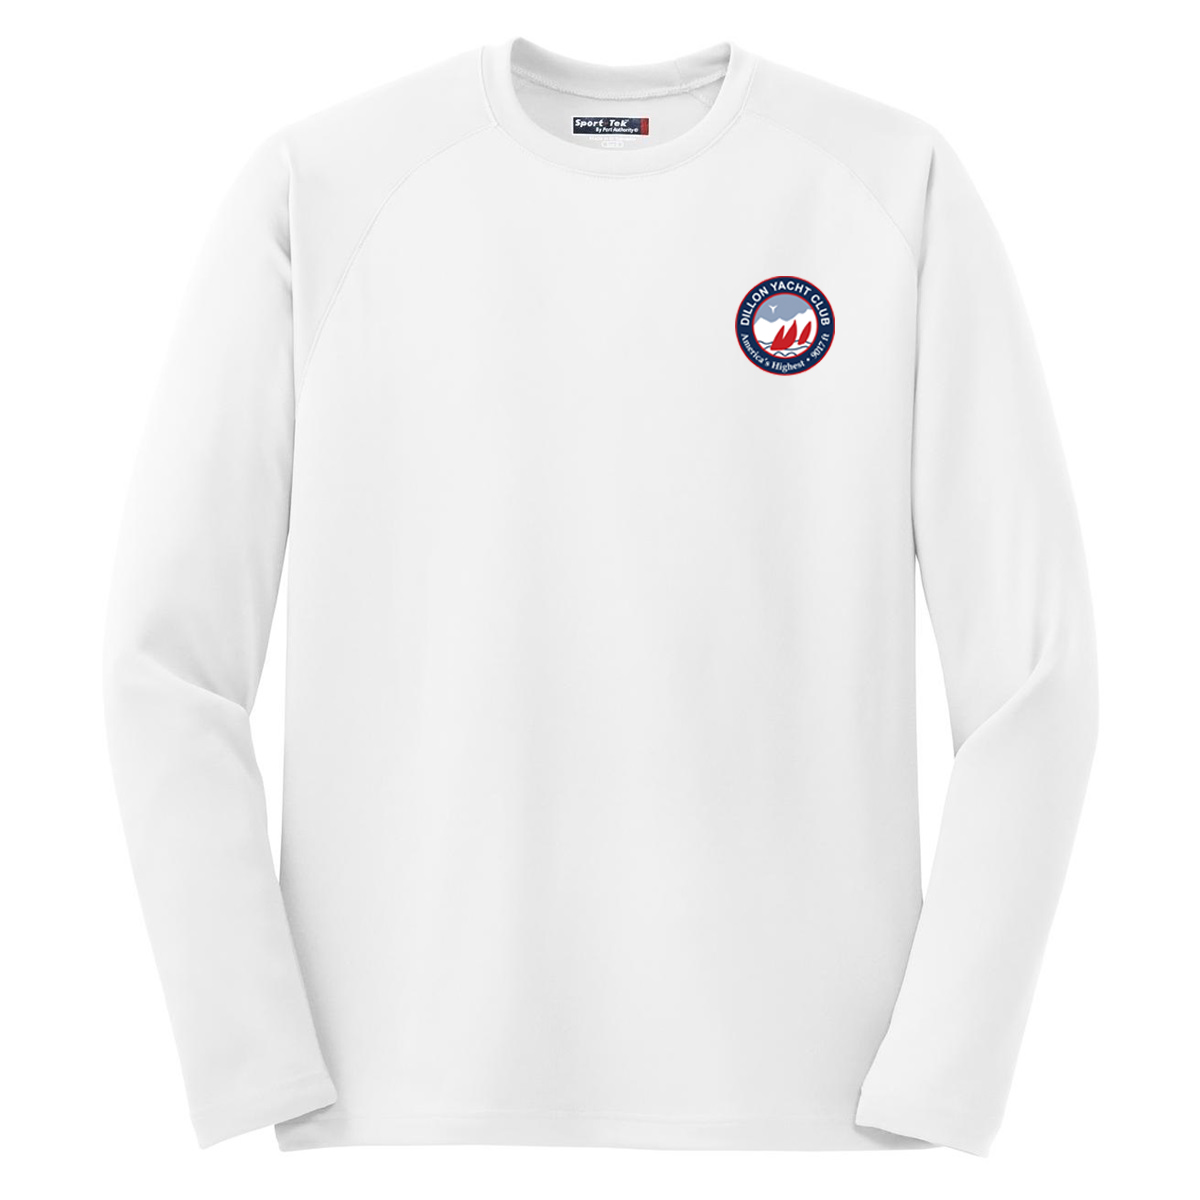 Dillon Yacht Club - M'S L/S TECH TEE